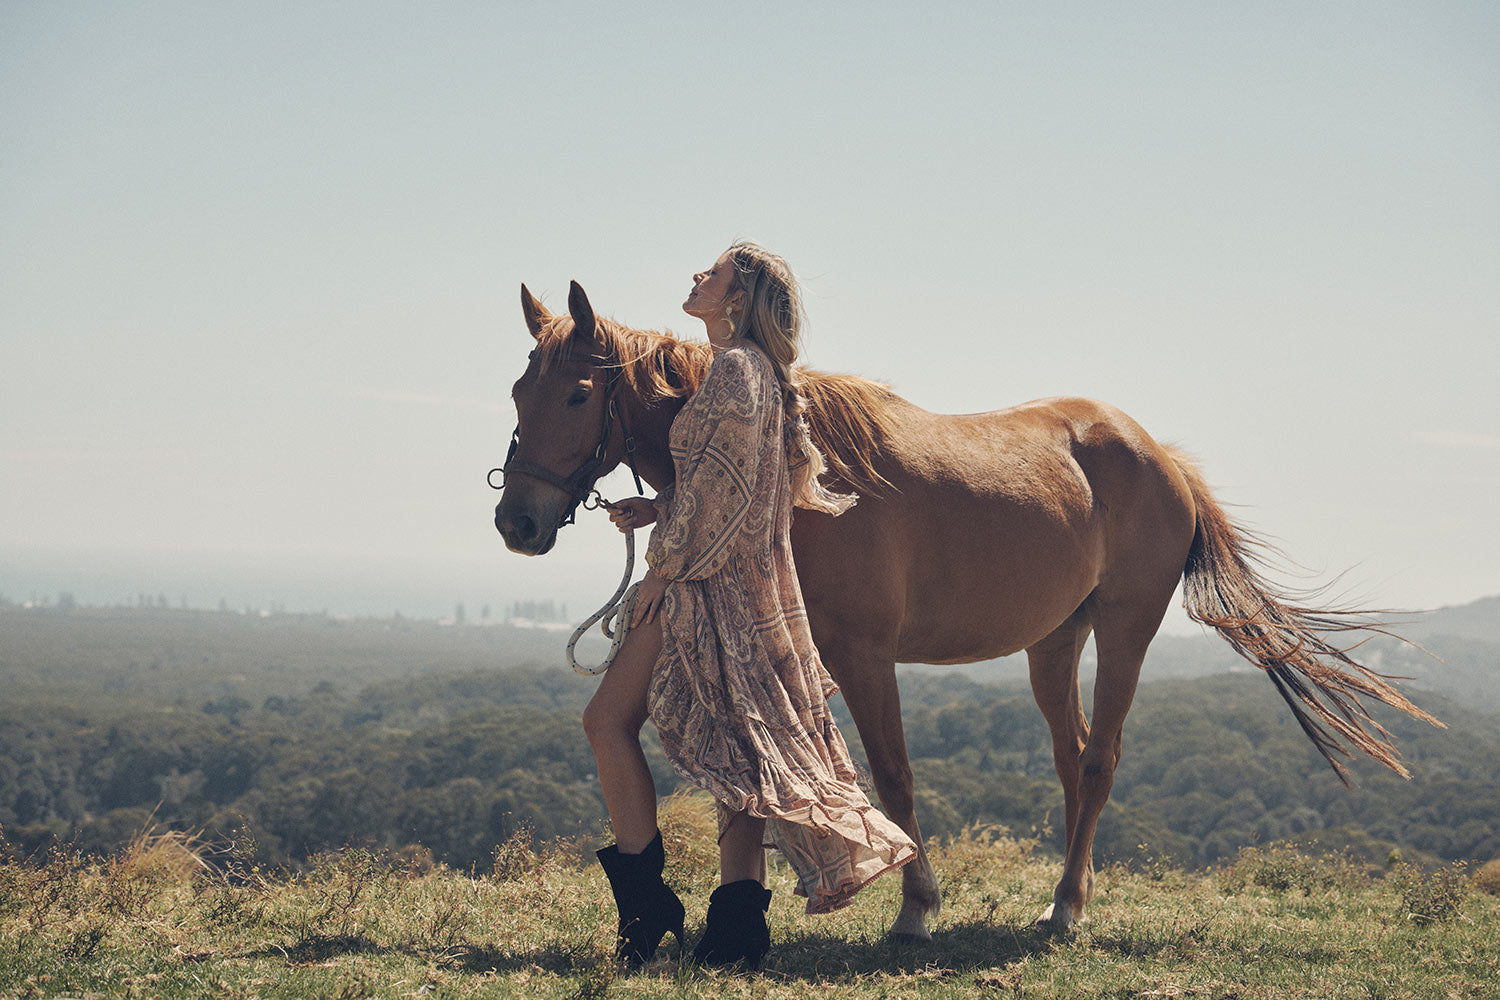 Jeweller and campaign model, Lucie Ferguson, posing in a green pasture with a brown horse while wearing gold jewellery, the Spell Cult Suede Slouch Boots with the pale pink, tiered Rumour Print Elle Gown featuring frills and elasticated cuffs.